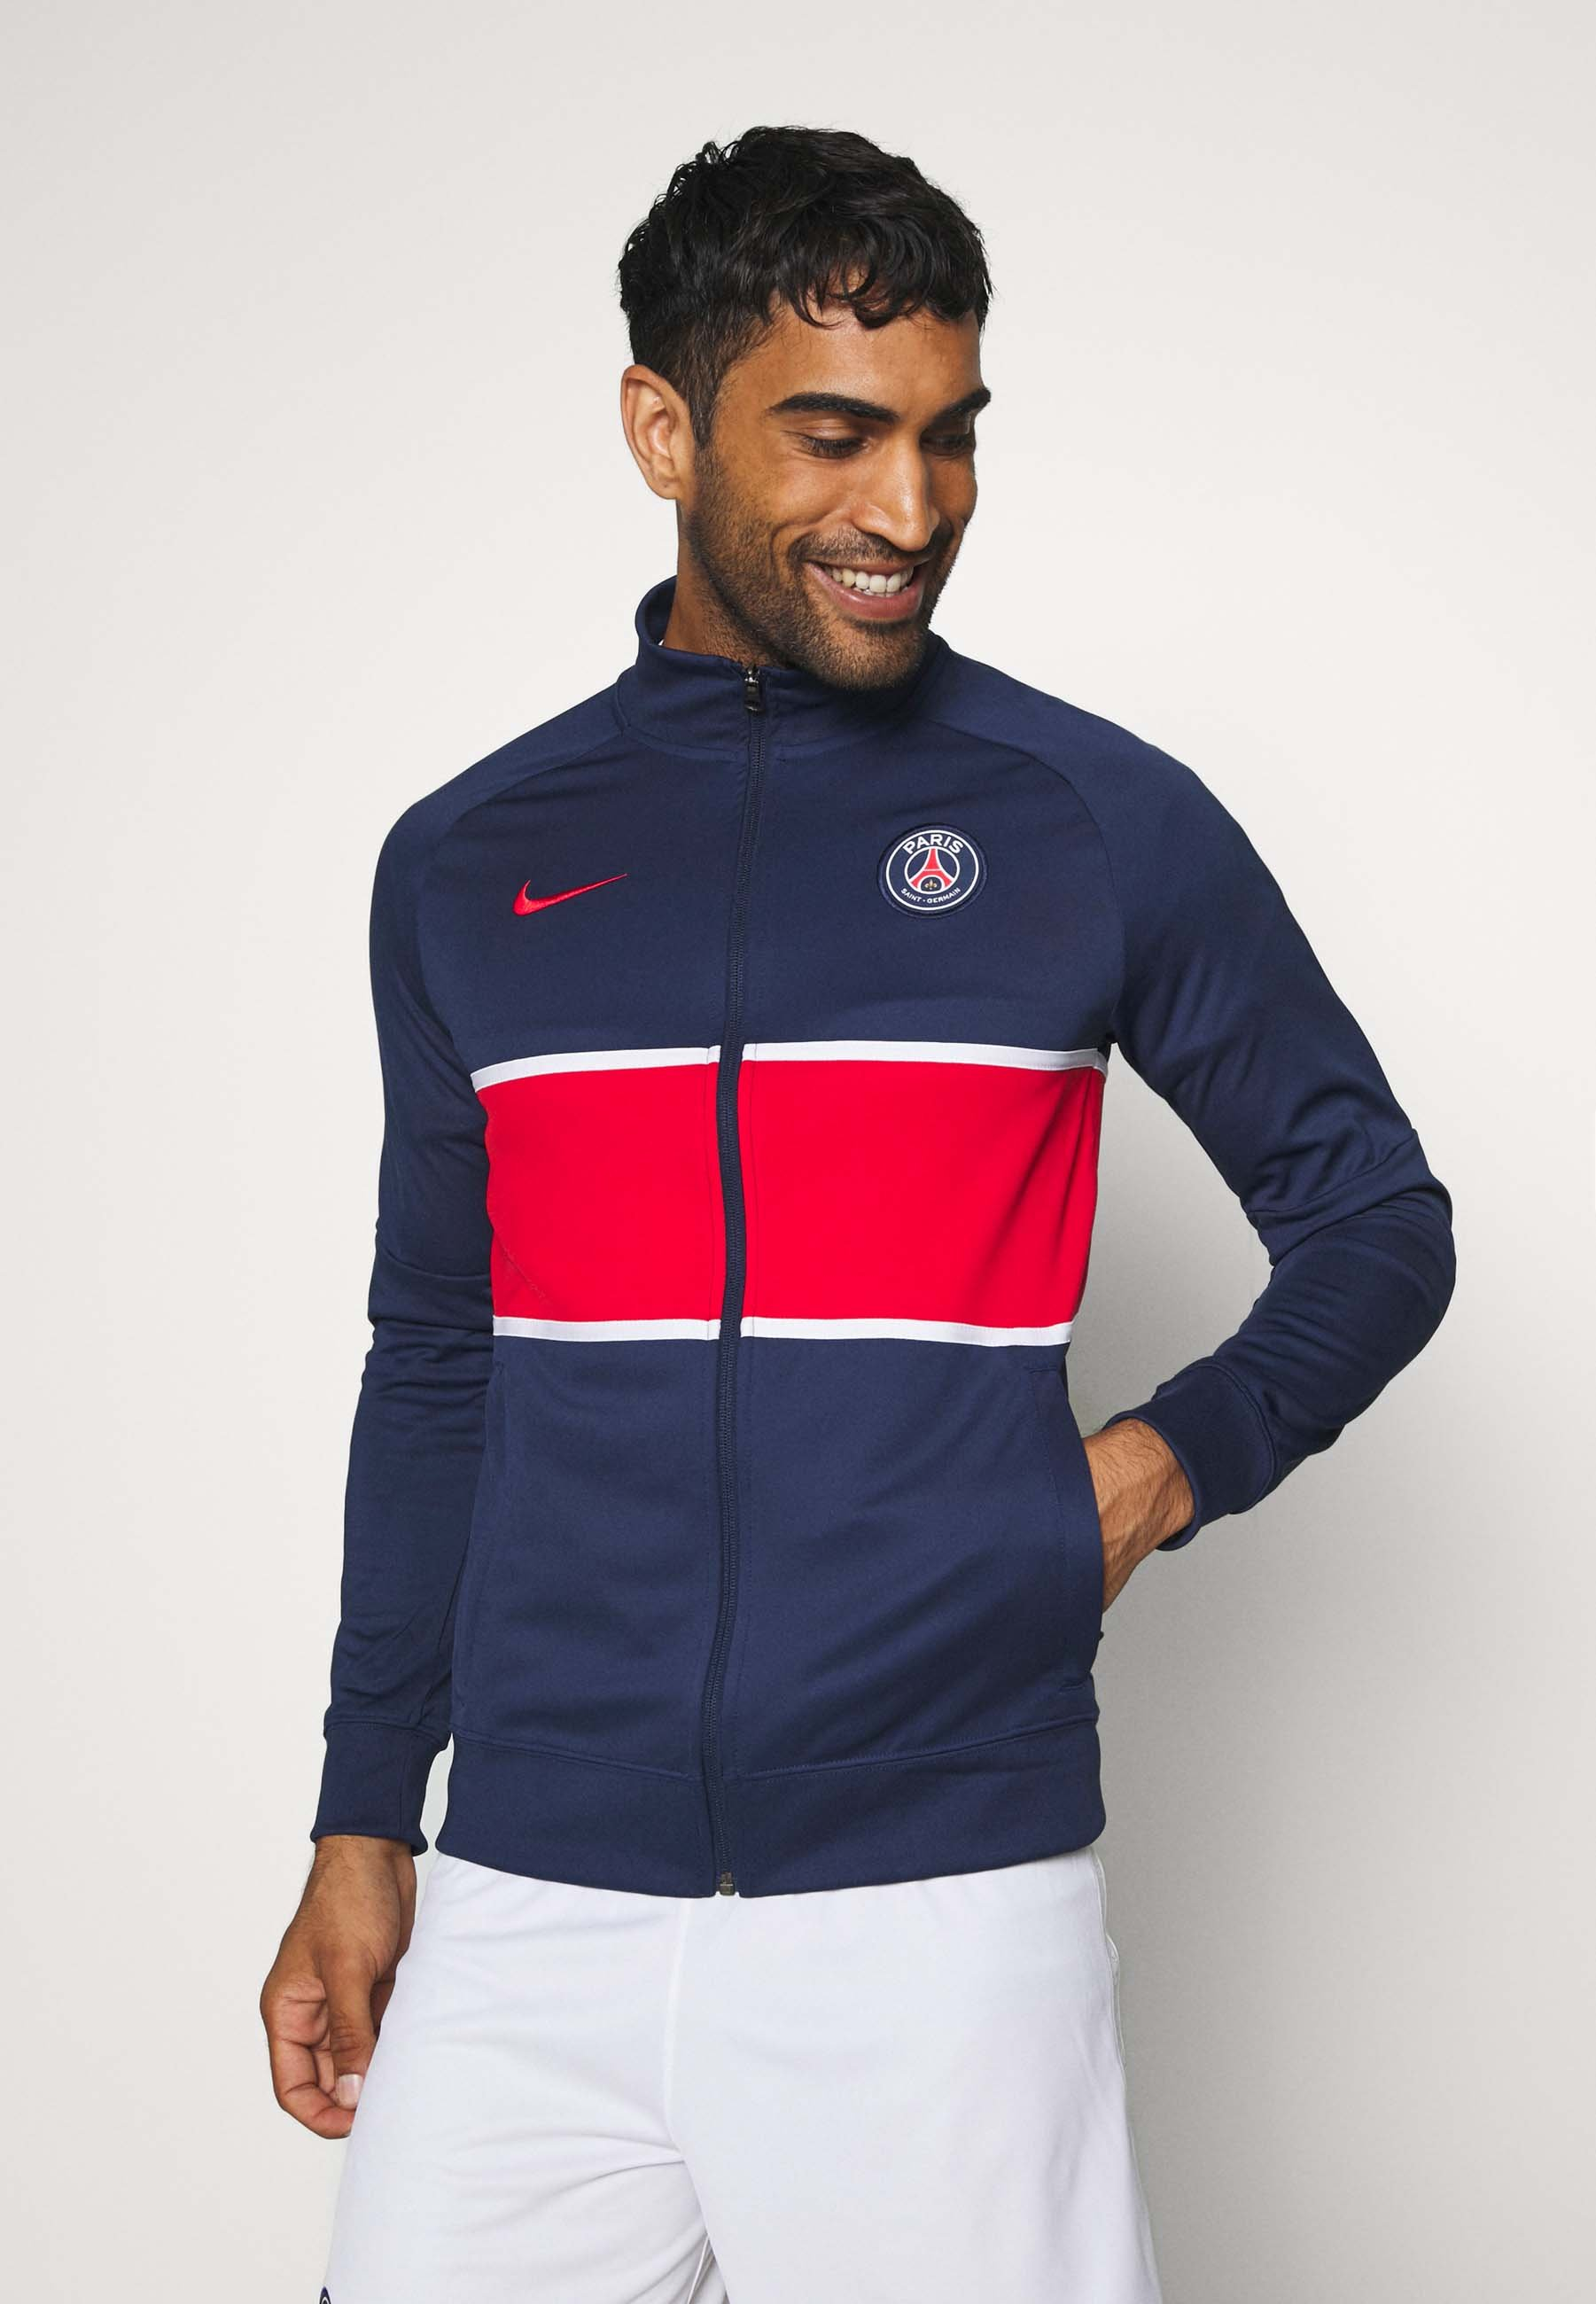 Nike Performance PARIS ST GERMAIN Vereinsmannschaften